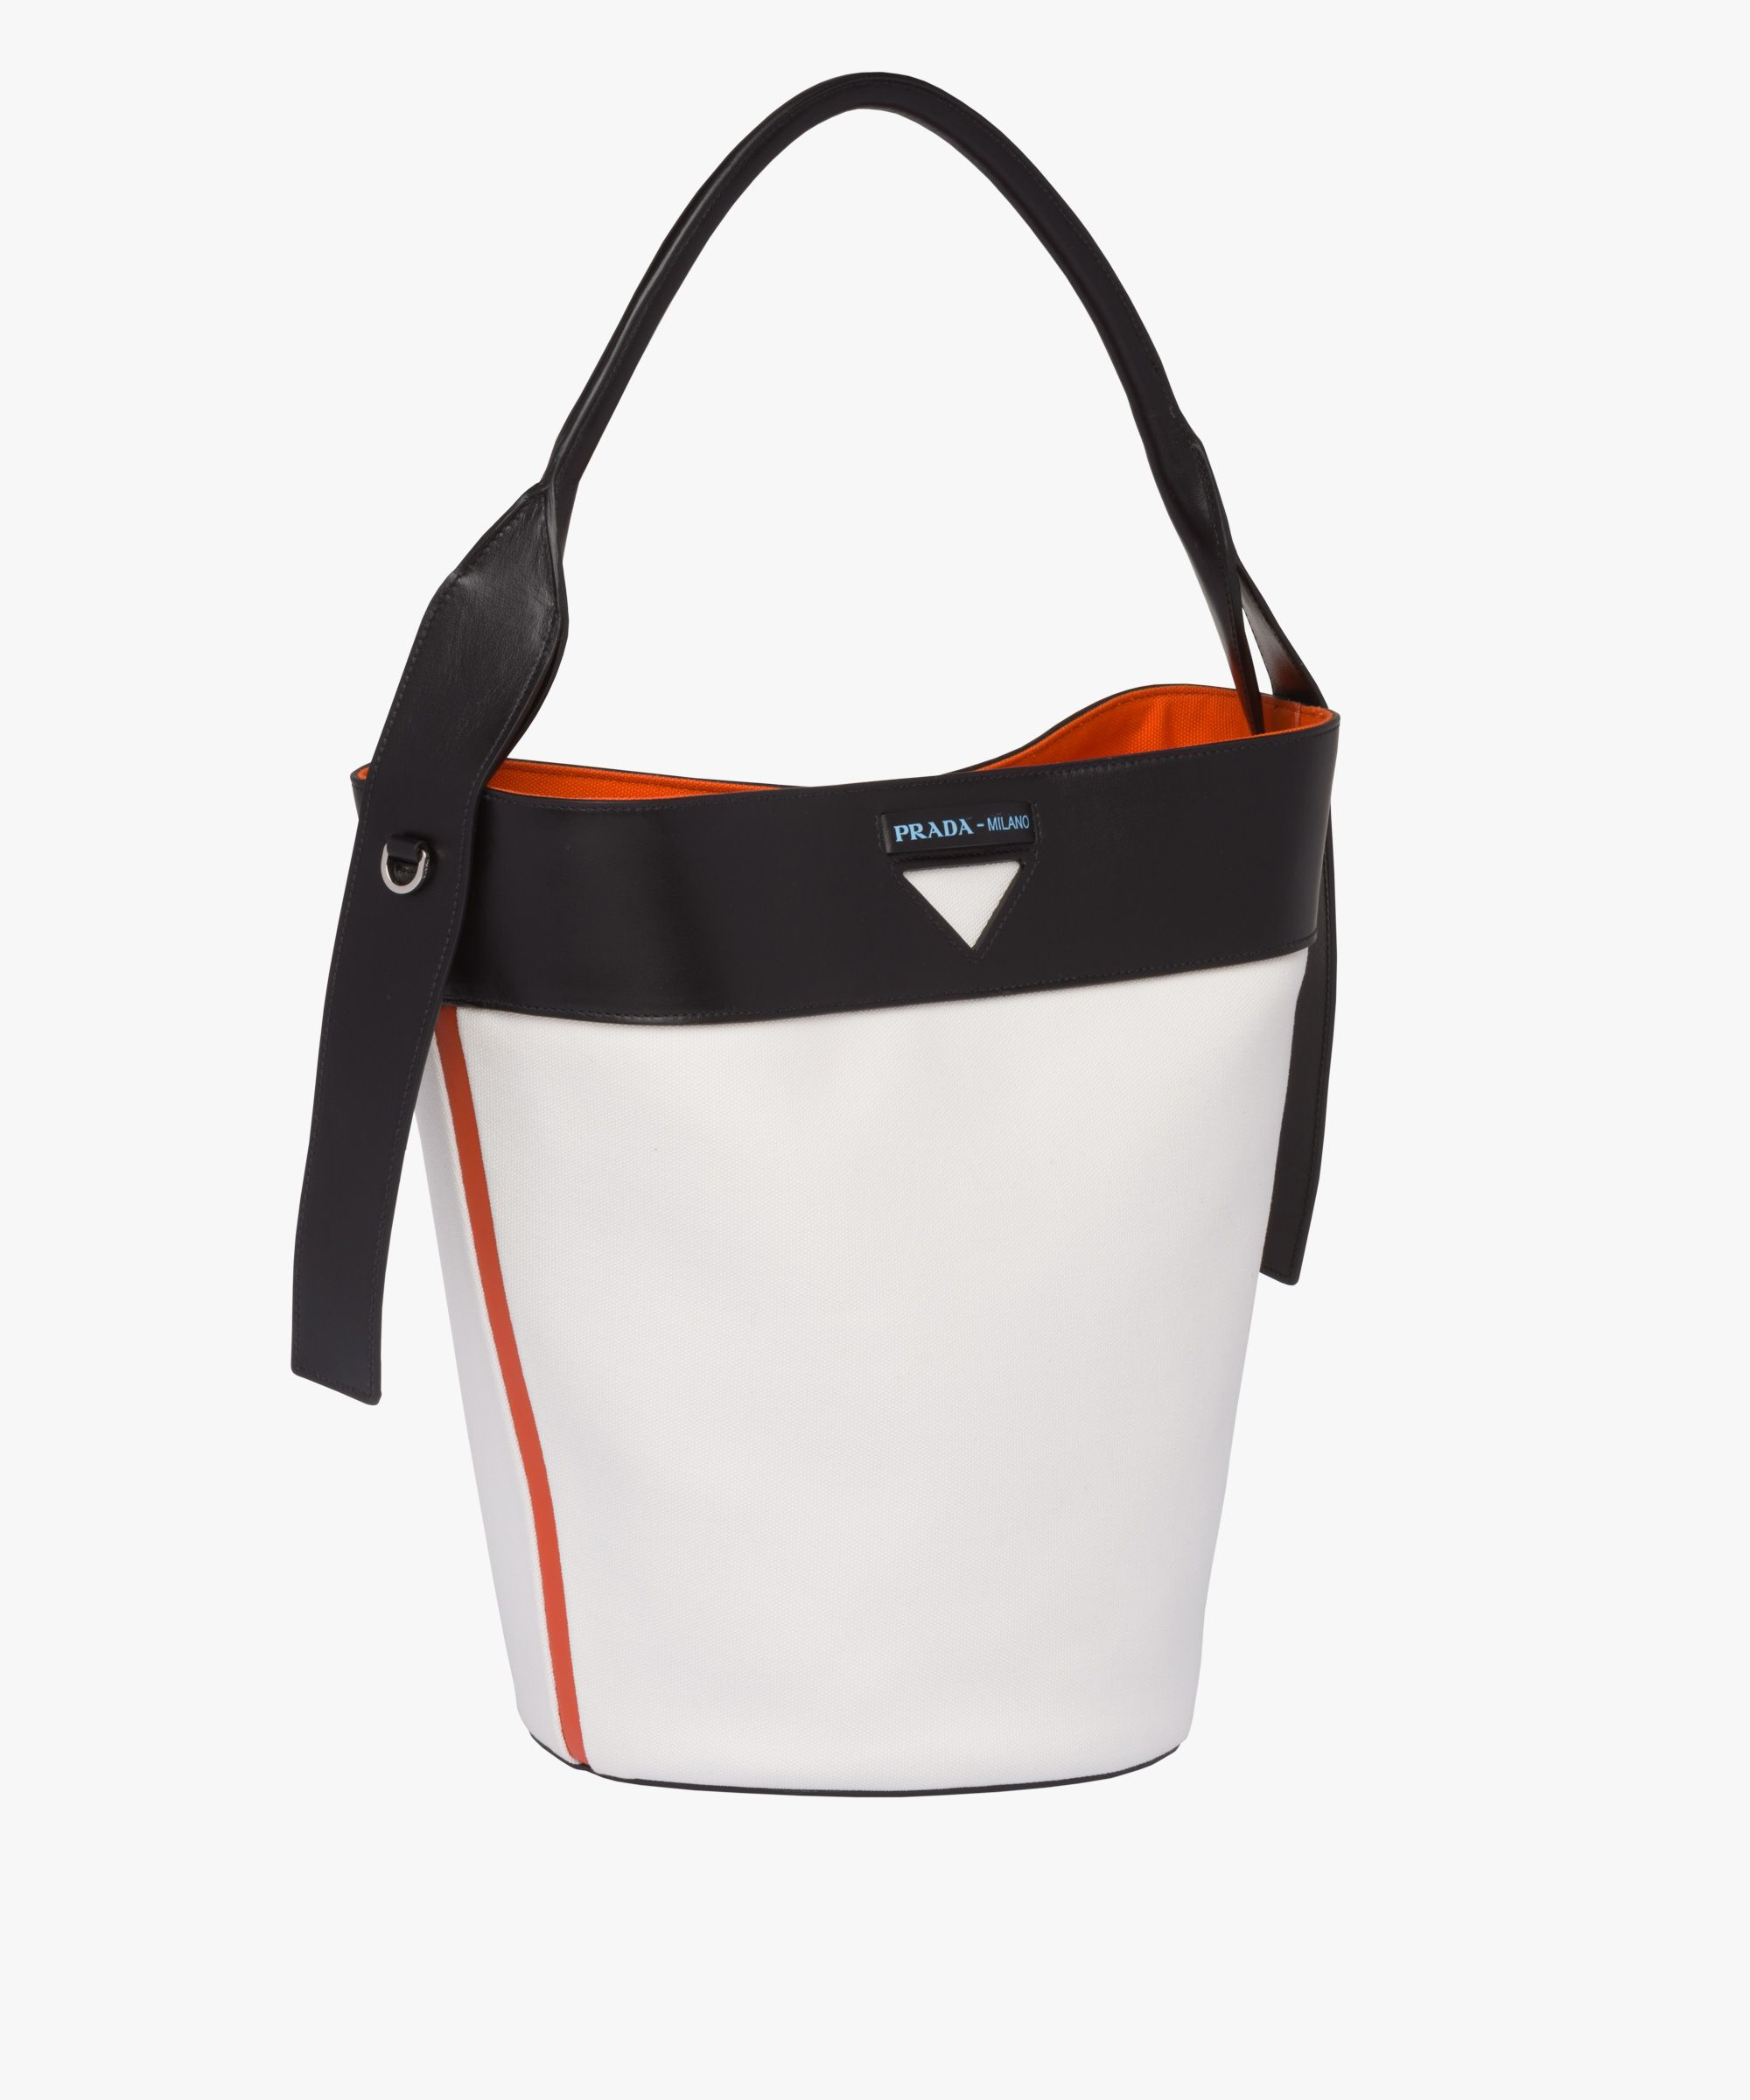 70db1985c7e3 Prada - Prada Ouverture white, black & orange canvas & leather bag ...